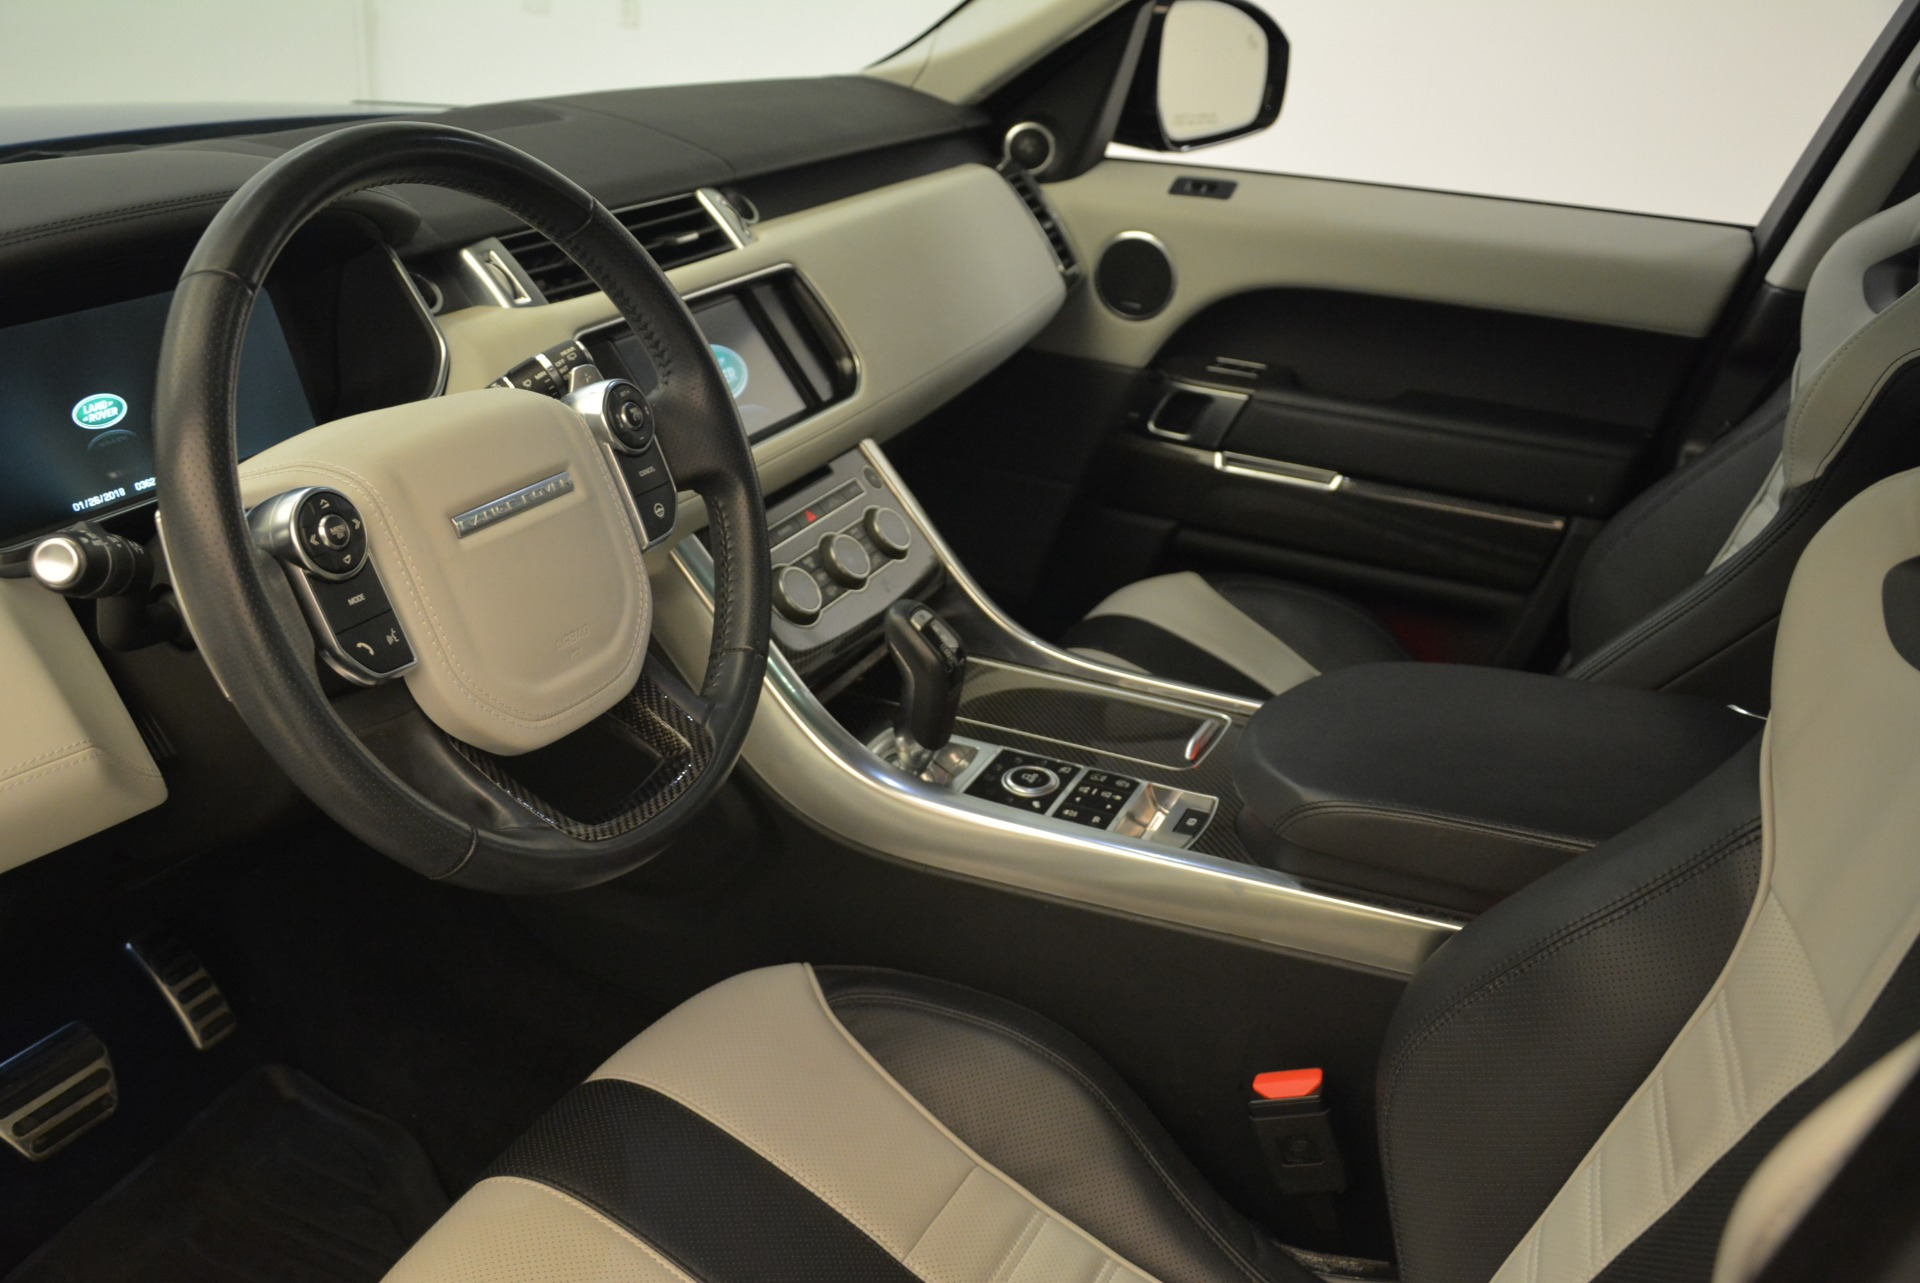 Used 2015 Land Rover Range Rover Sport SVR For Sale In Greenwich, CT 2046_p15